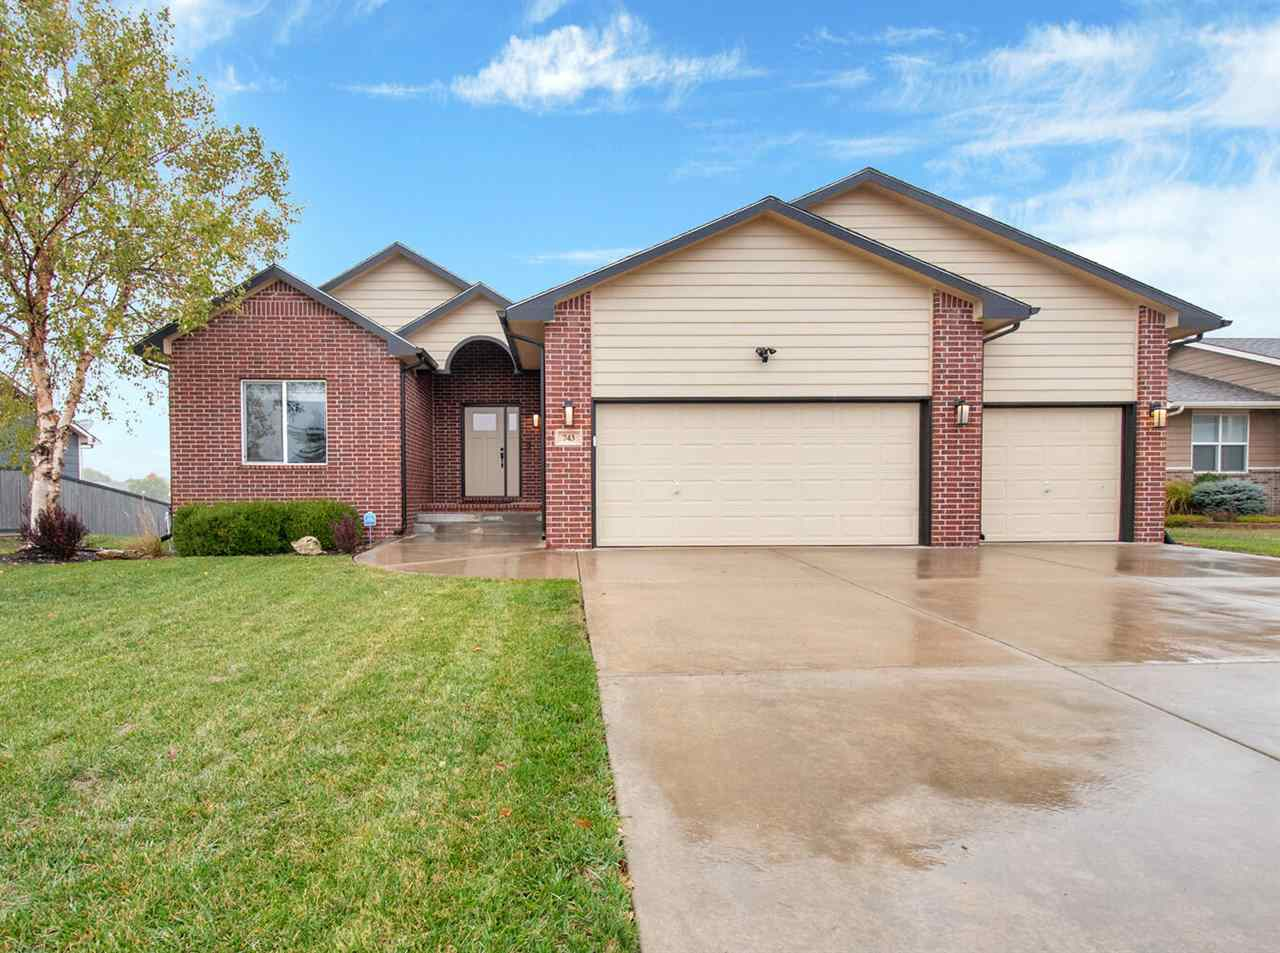 Beautiful waterfront property in the Prairie Lake addition. This 4BR, 3bth home has been well cared